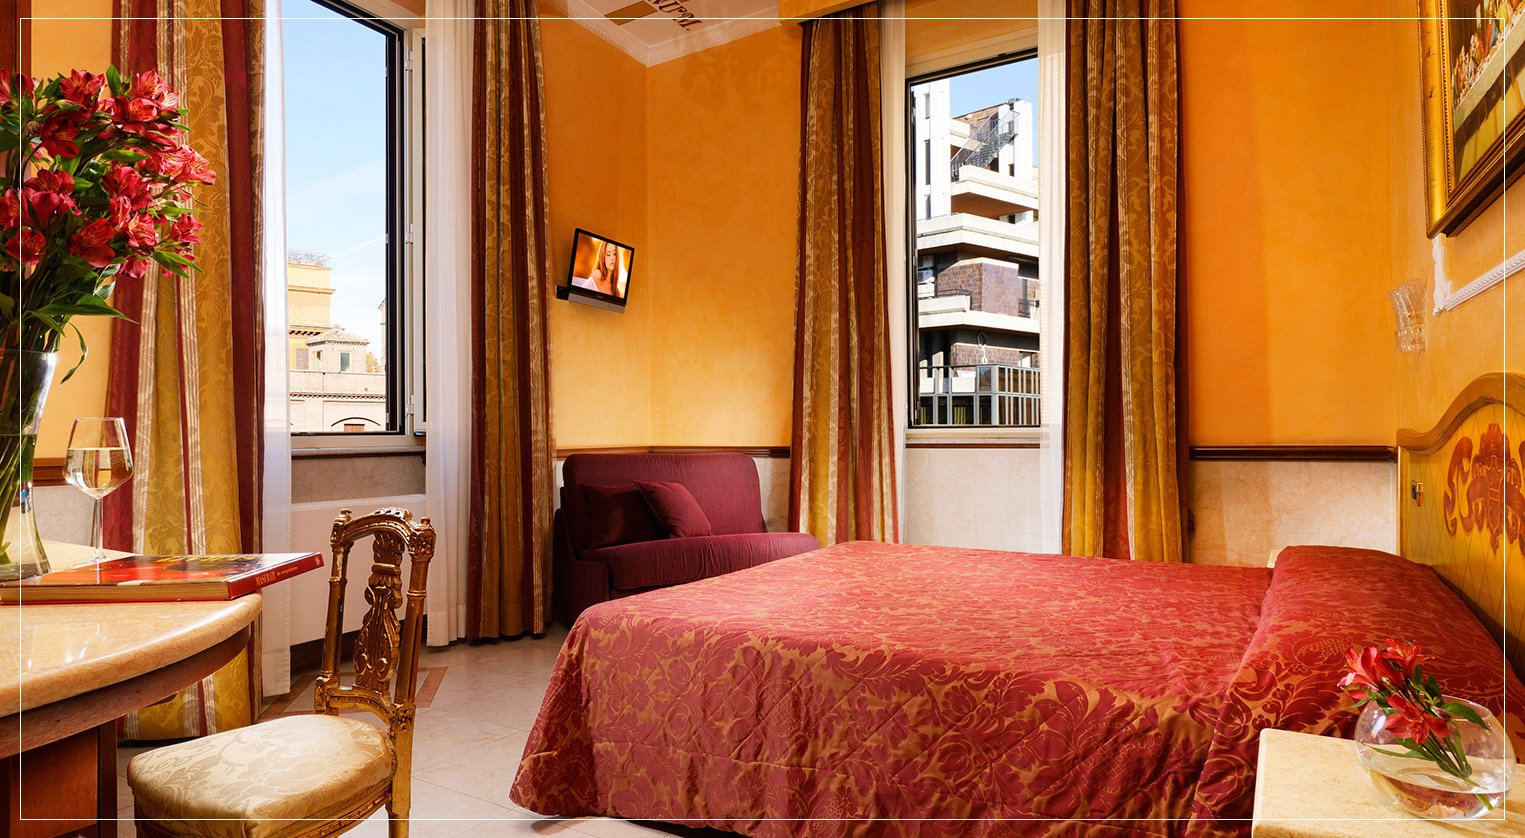 Luxury Hotel 4 Stars Near Spanish Steps In The Centre Of Rome